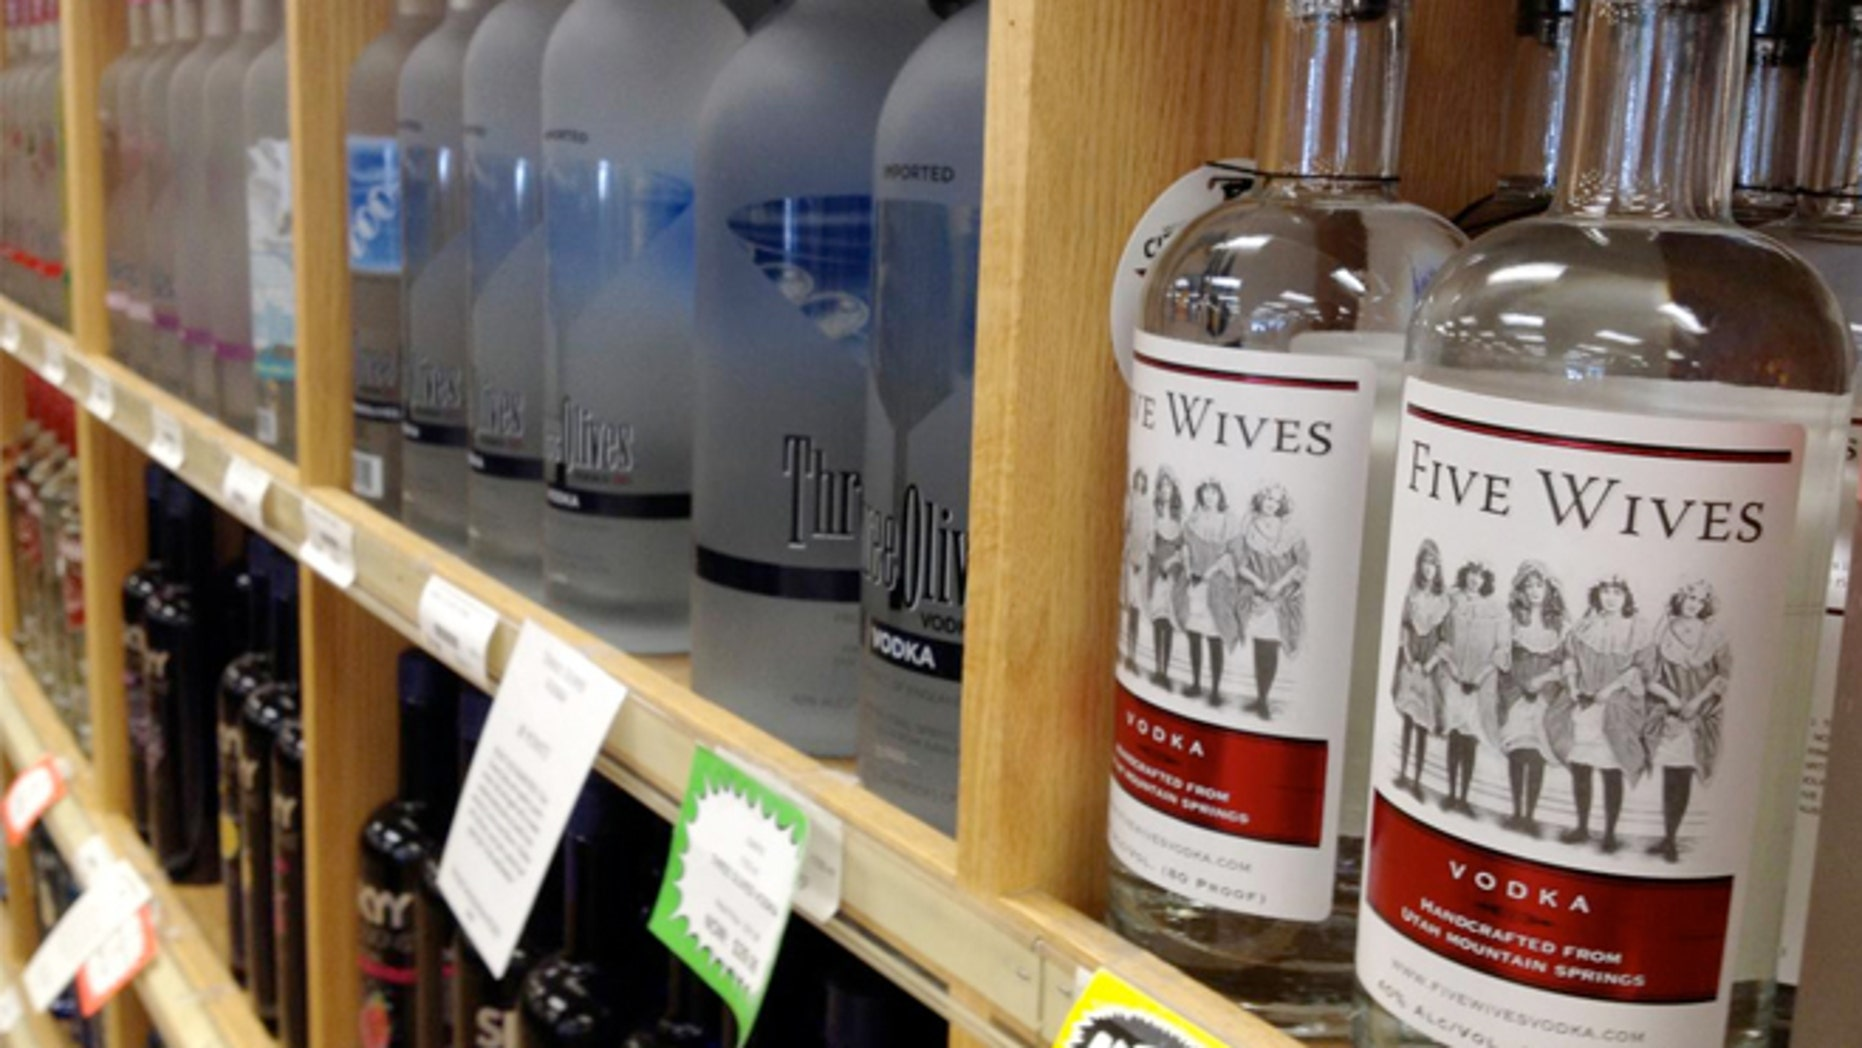 Idaho liquor regulators are now allowing the sale of Five Wives Vodka it had previously deemed offensive to residents.